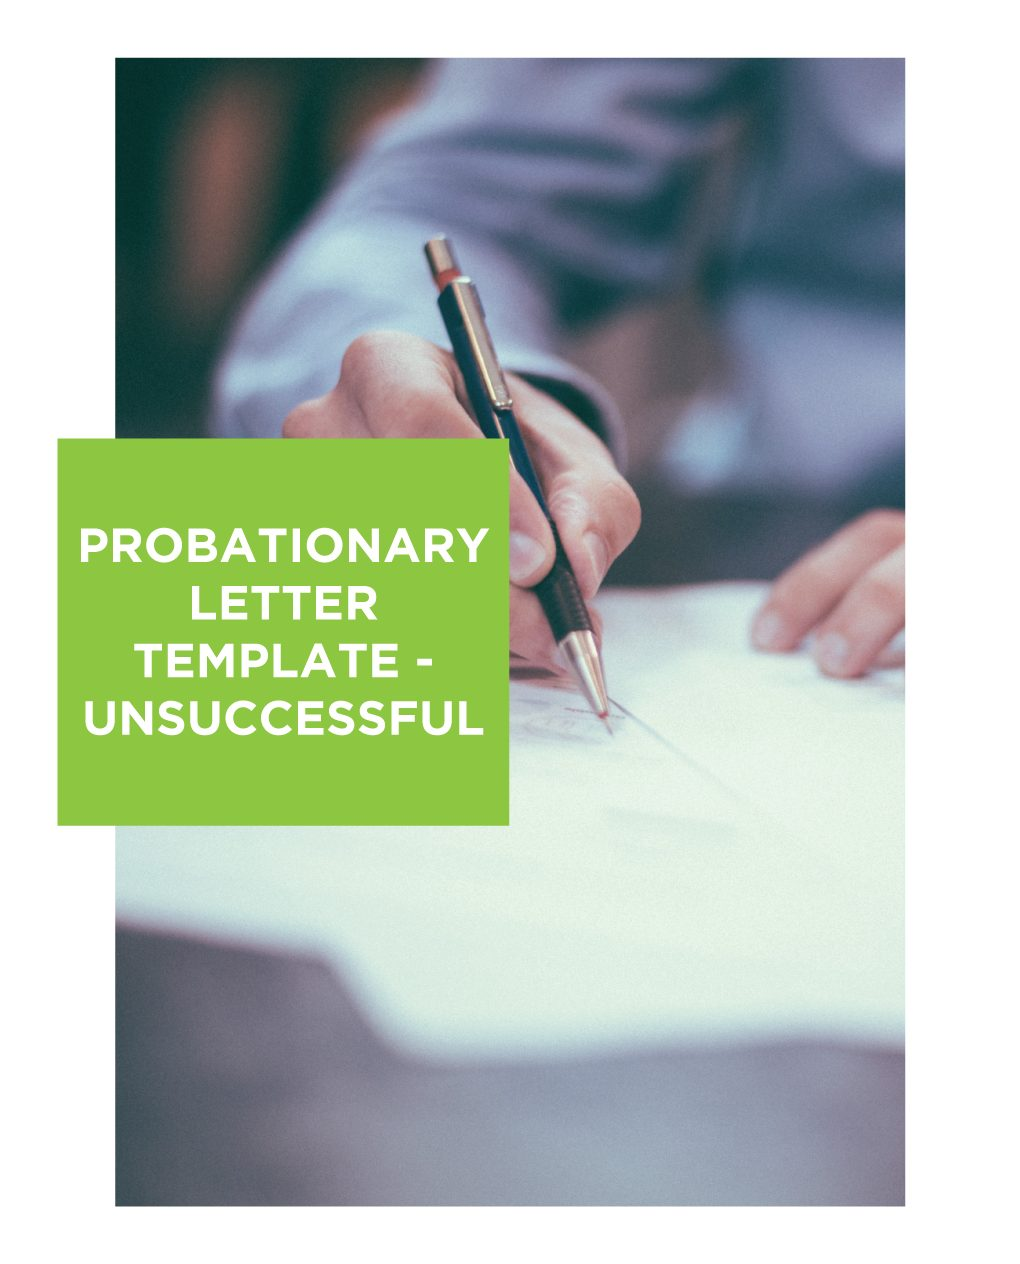 Probationary Letter Template Unsuccessful - Probation Periods - Letting go can be easier than holding on